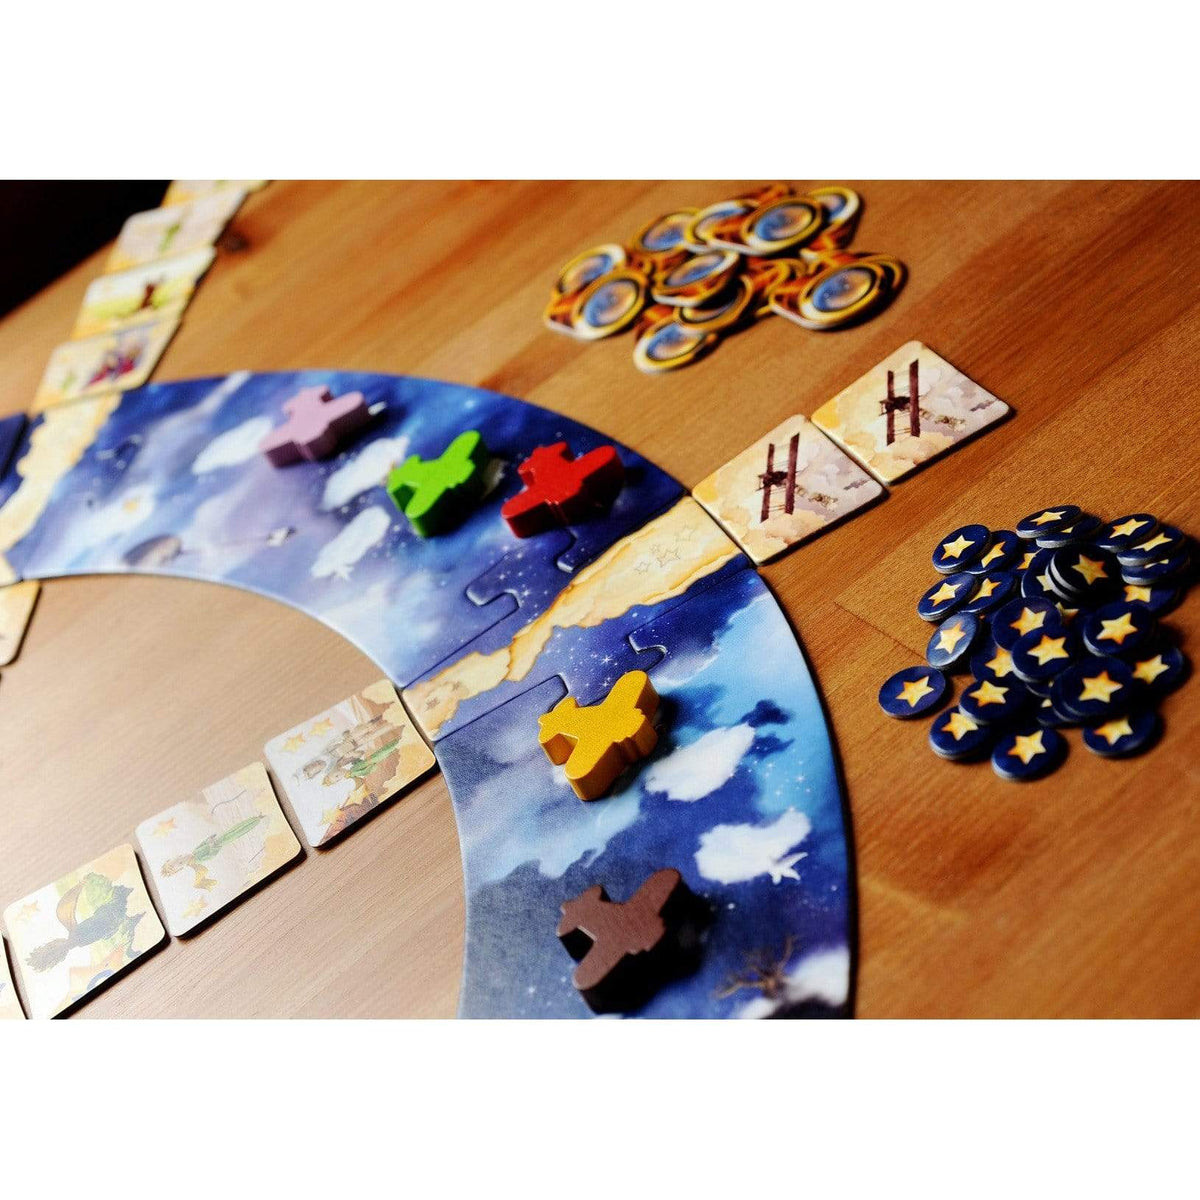 The Little Prince: Rising To The Stars ACD Distribution Board Games